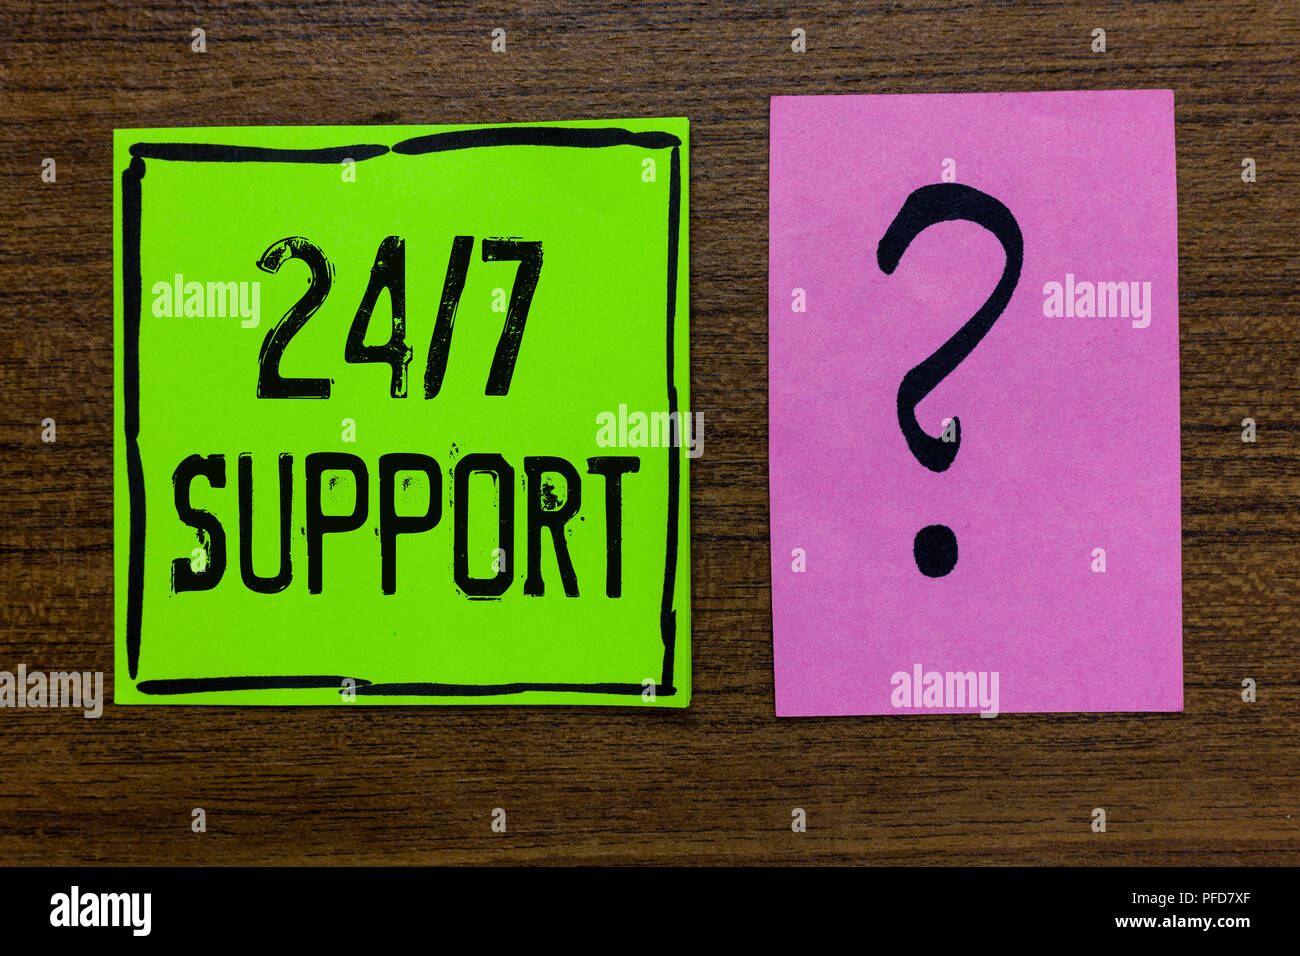 Network Q Stock Photos & Network Q Stock Images - Page 3 - Alamy